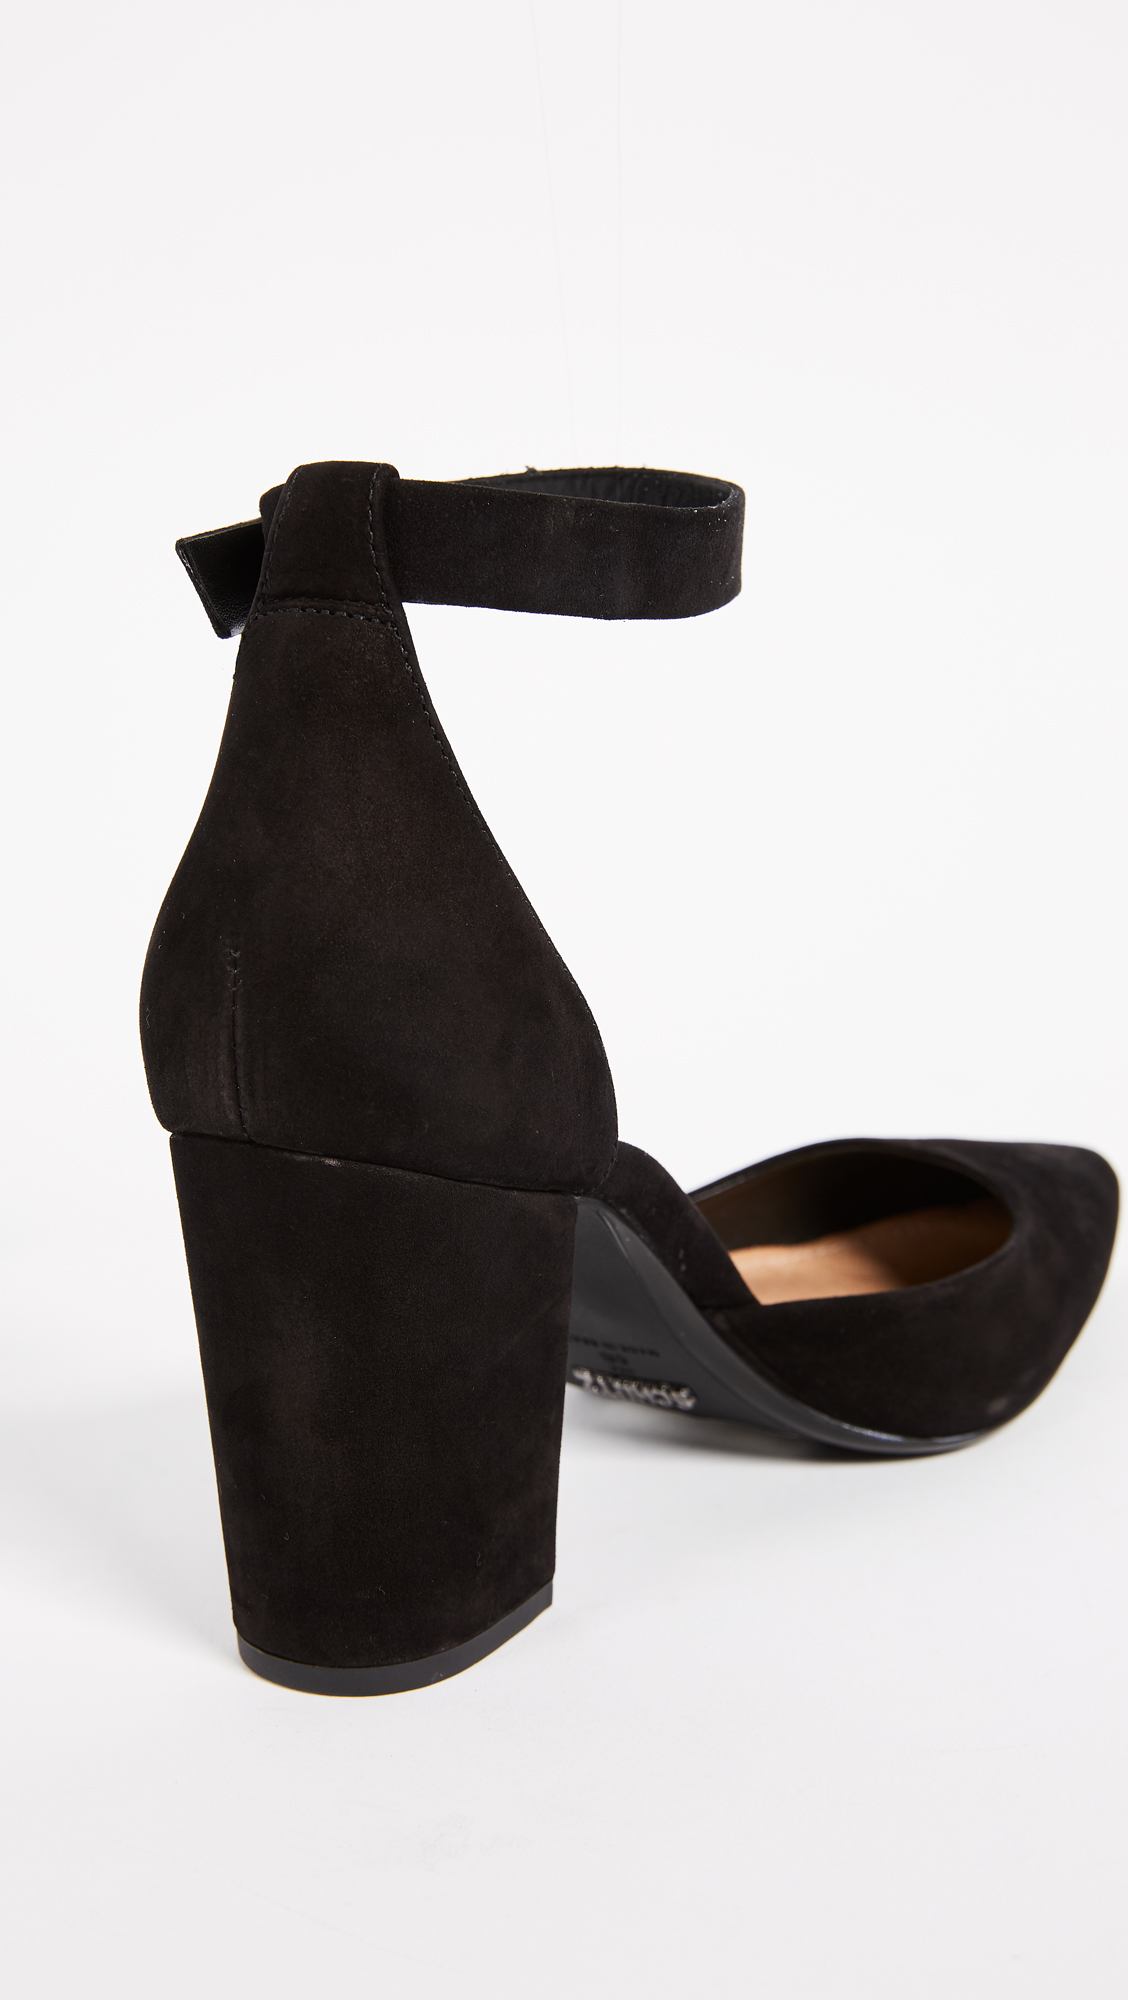 Schutz Ionara Ankle Strap Pumps Shopbop Mary Janes Straps Circle Block Pointed Toe Wedges Shoes Black